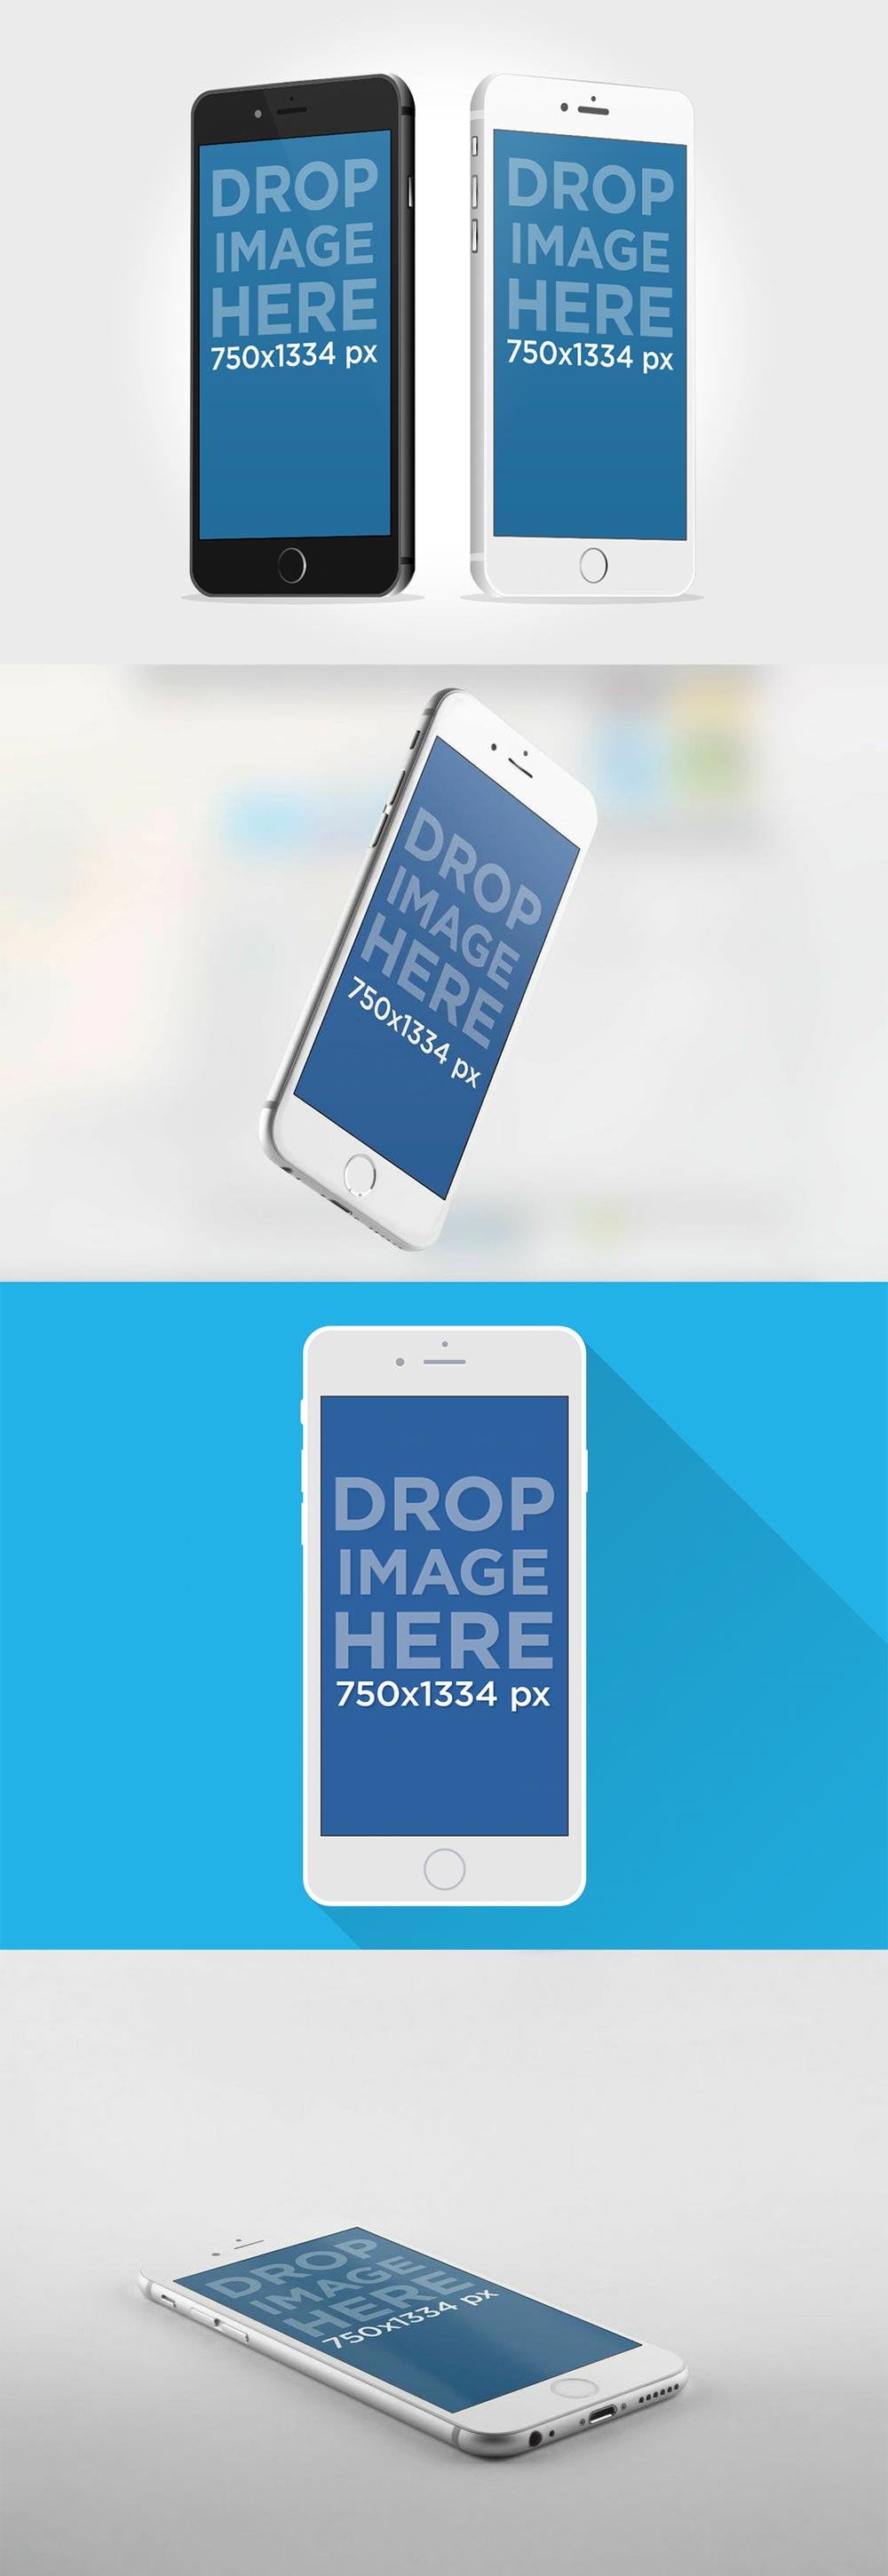 http://www.graphicsfuel.com/wp-content/uploads/2014/11/iphone-6-mockup-psds.jpg